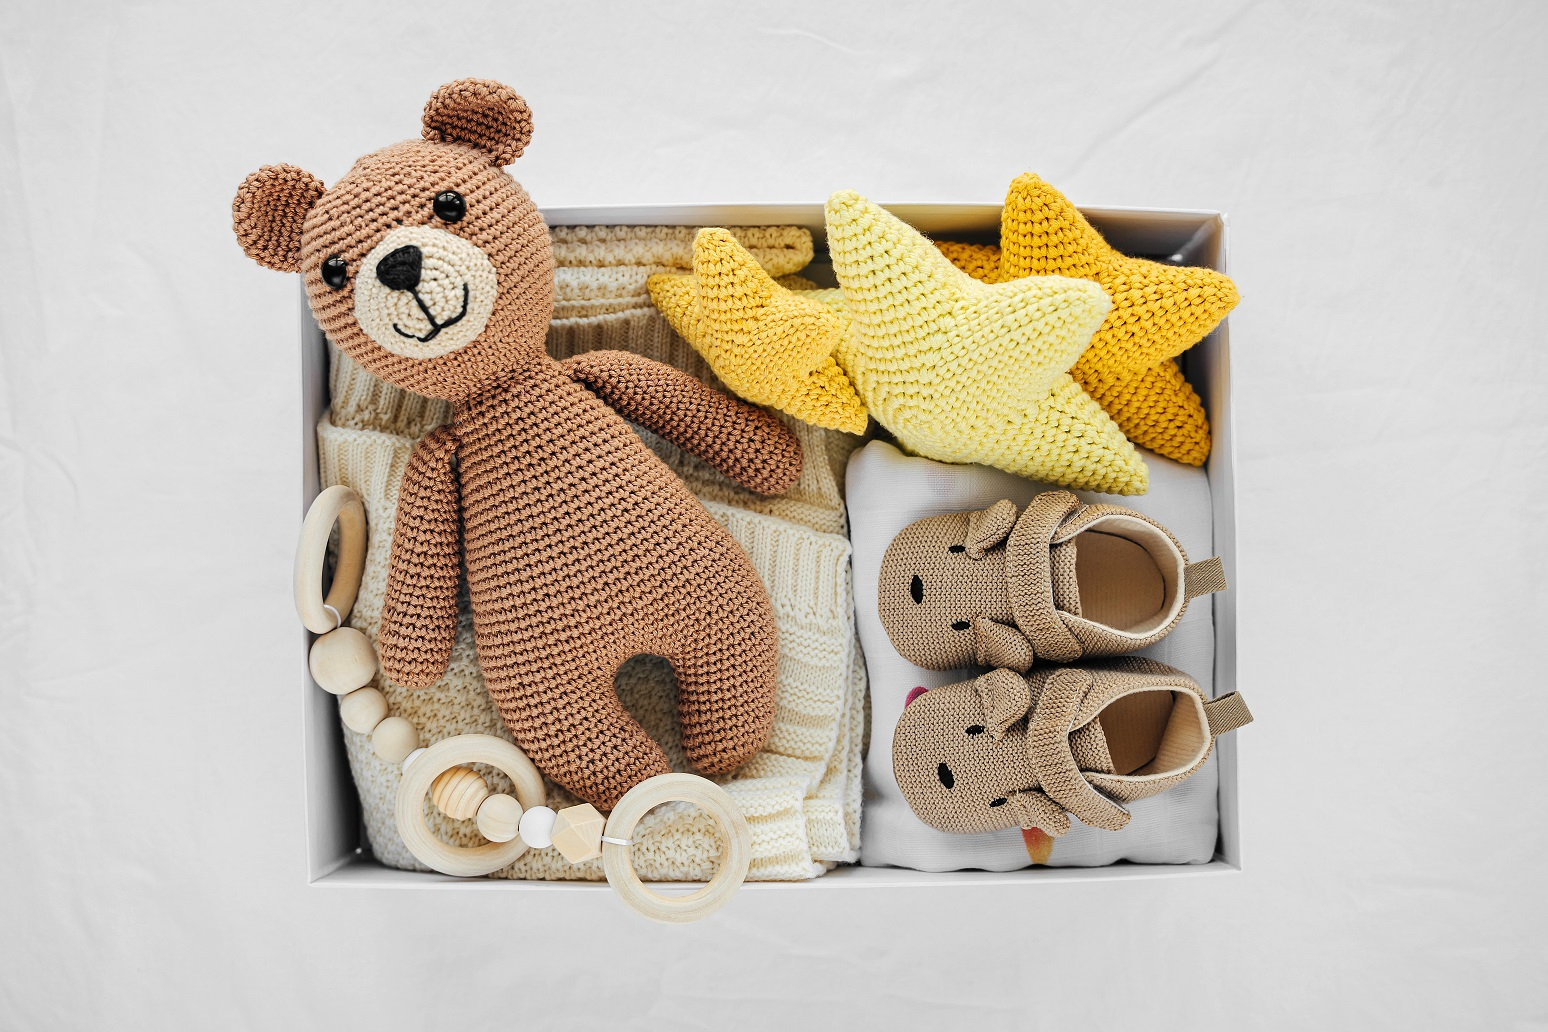 Dodging Pink & Blue: How to Avoid Gendered Baby Gifts